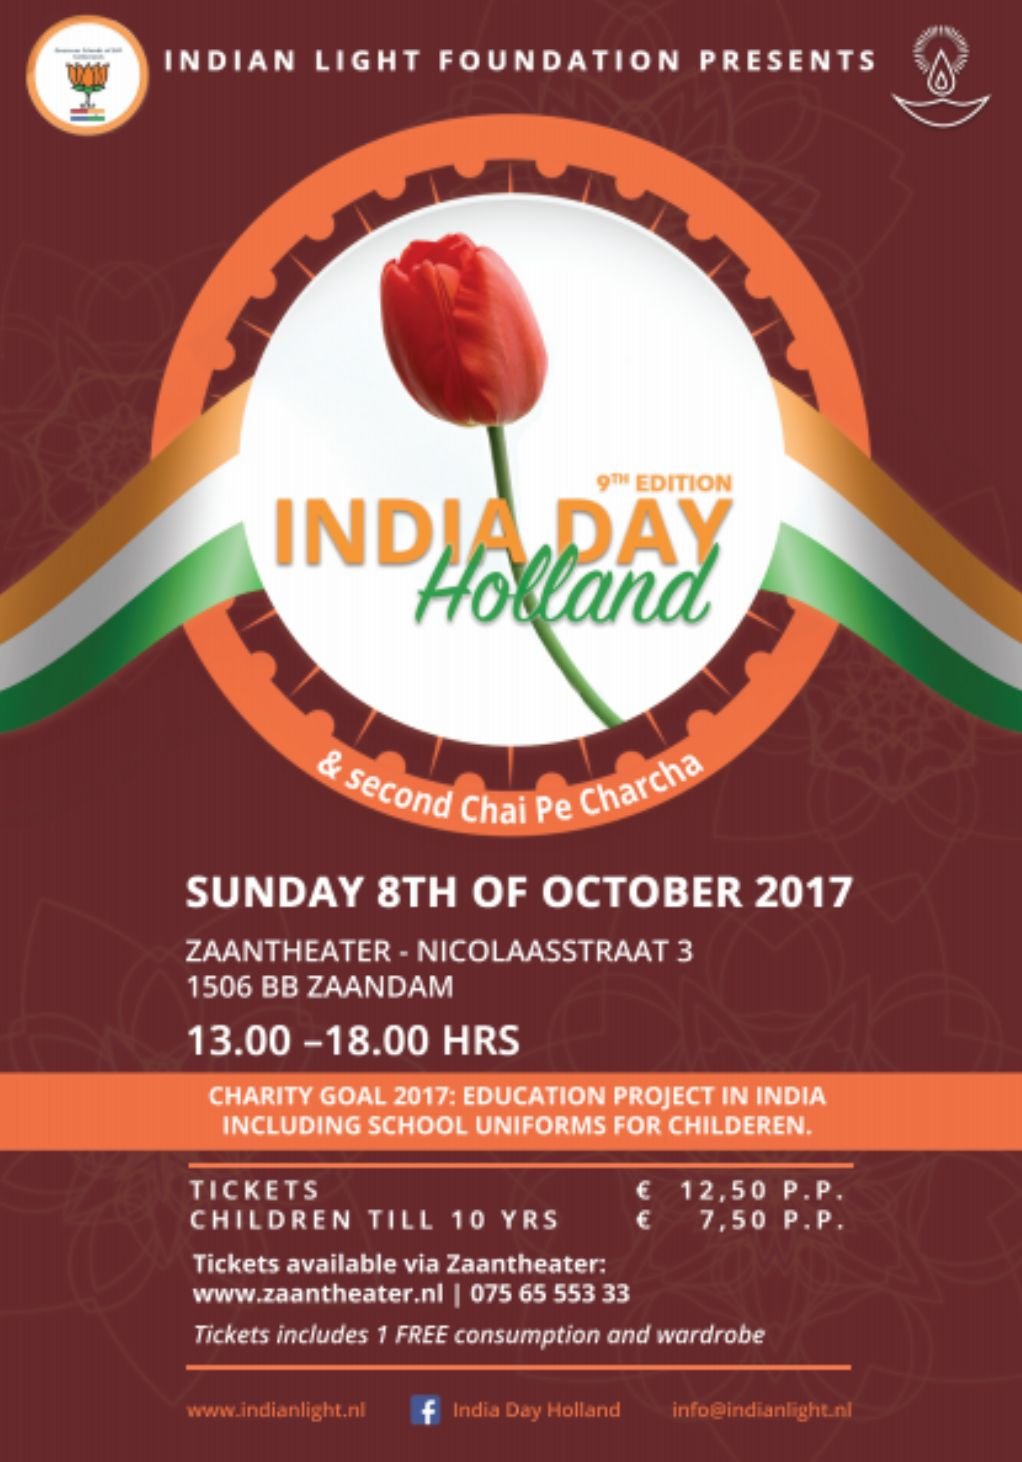 India Day Holland 2017